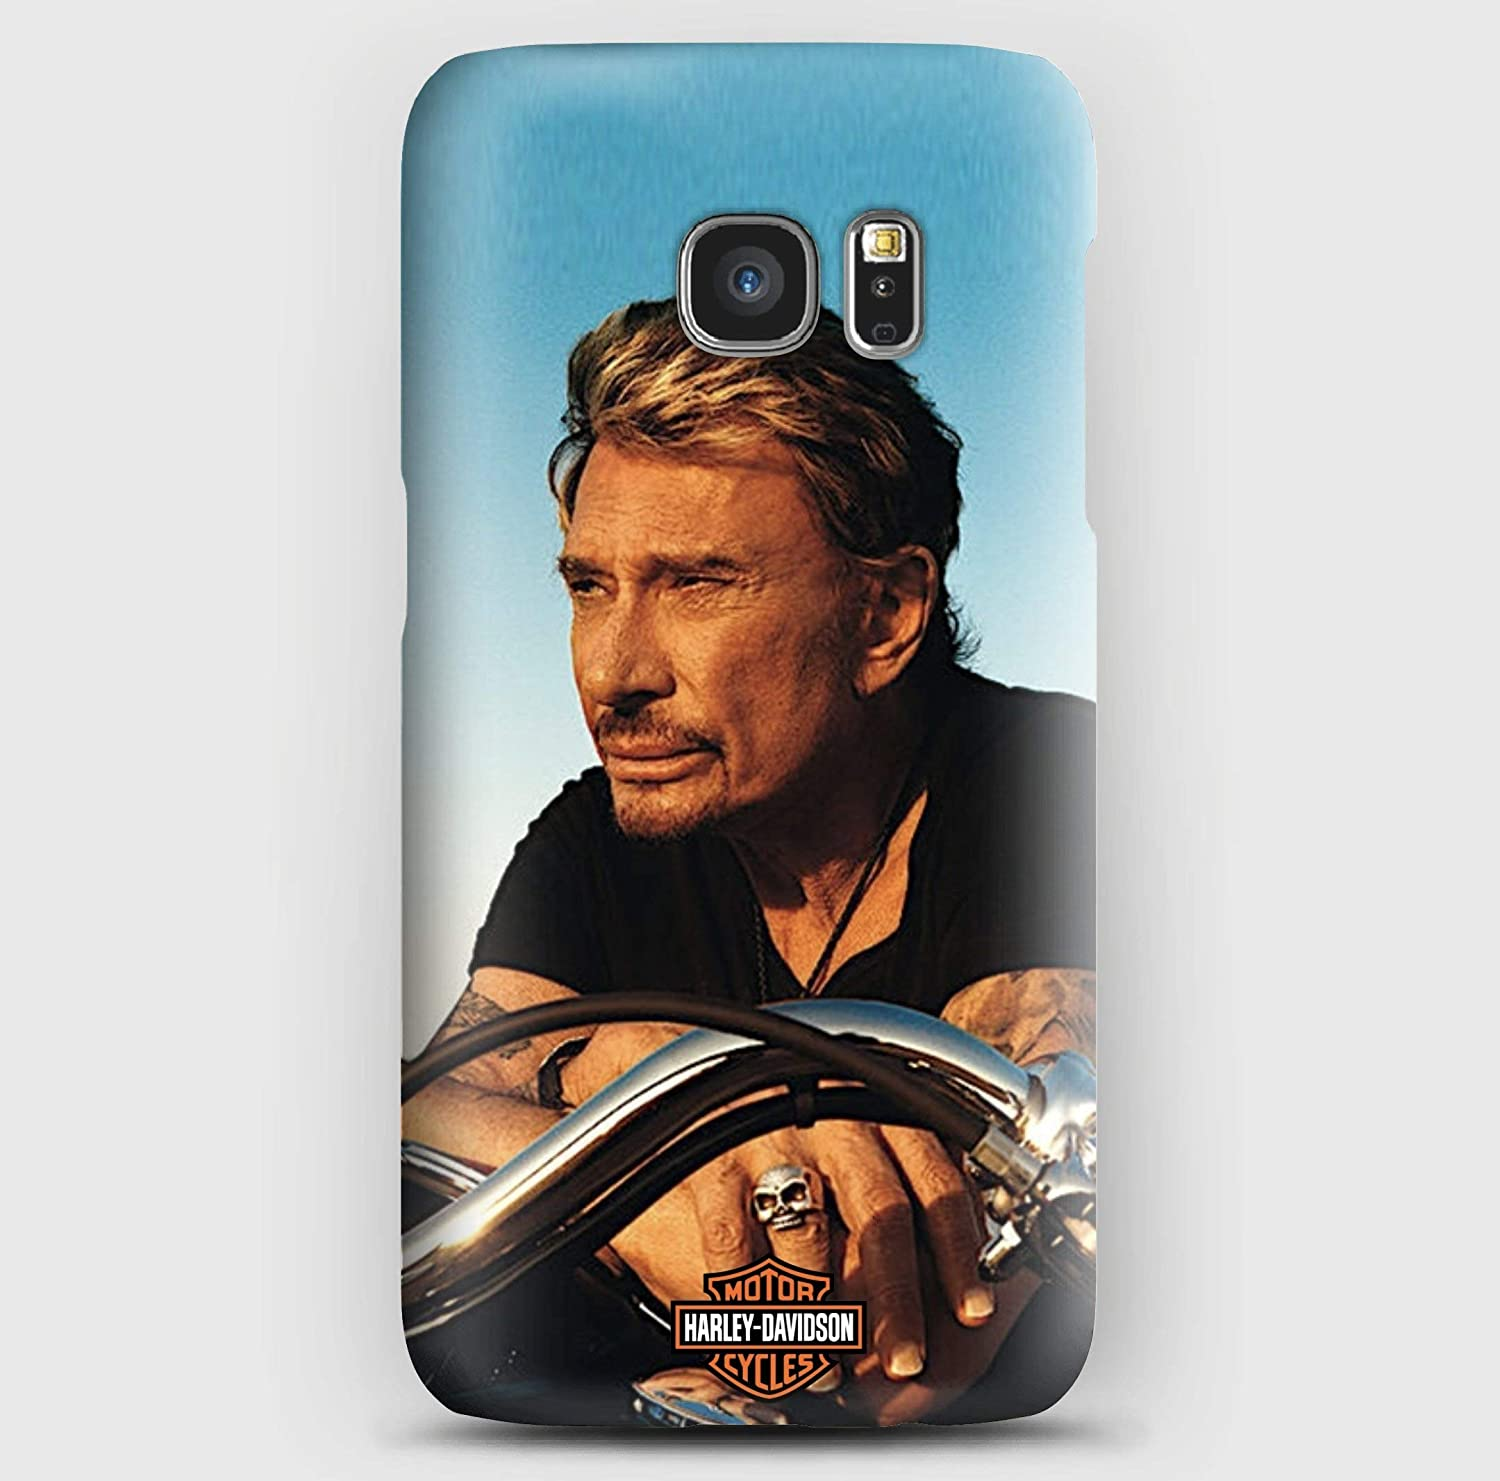 Johnny Hallyday en Harley Coque Samsung S5, S6, S7, S8,S9, A3, A5, A7,A8, J3,J5, Note 4, 5, 8,9, Grand prime,